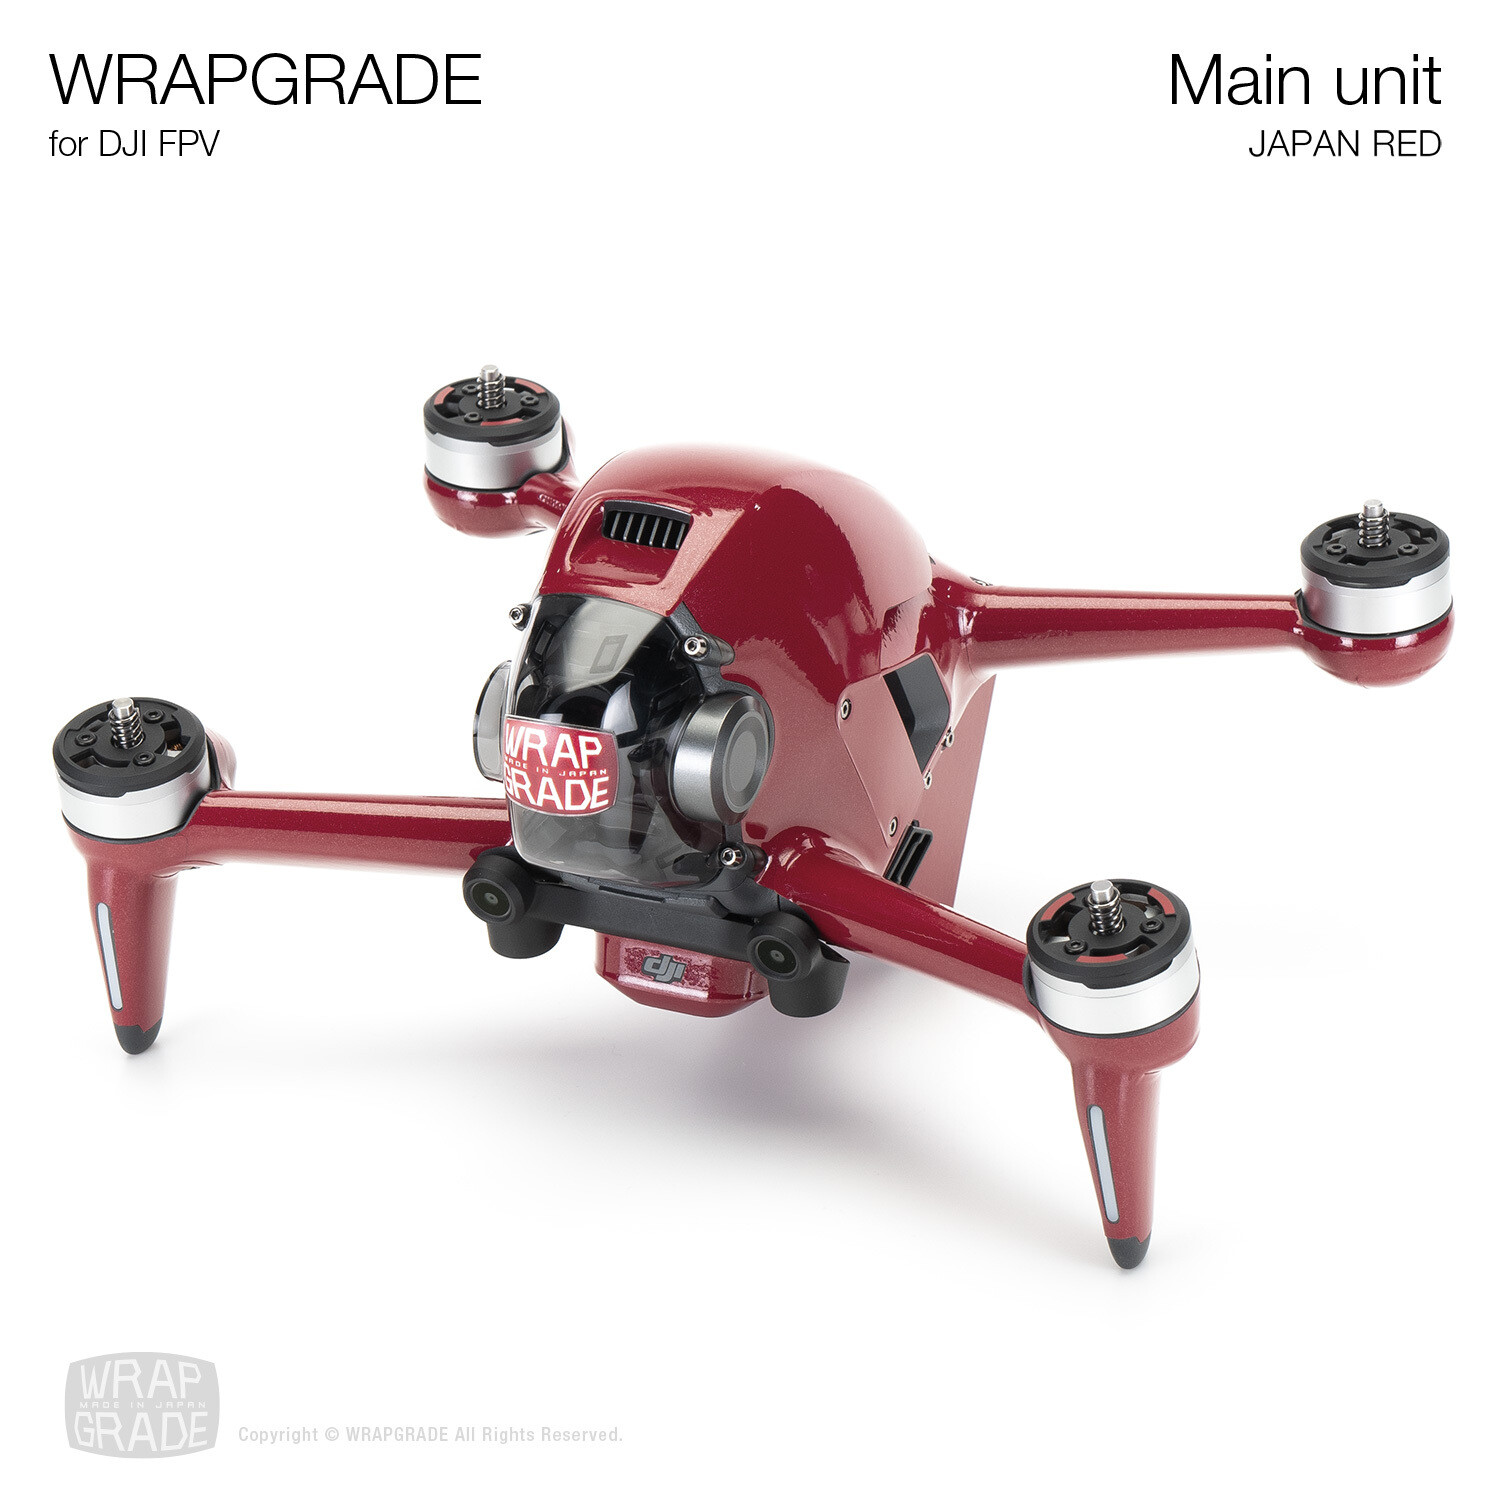 WRAPGRADE for DJI FPV | Drone (JAPAN RED)